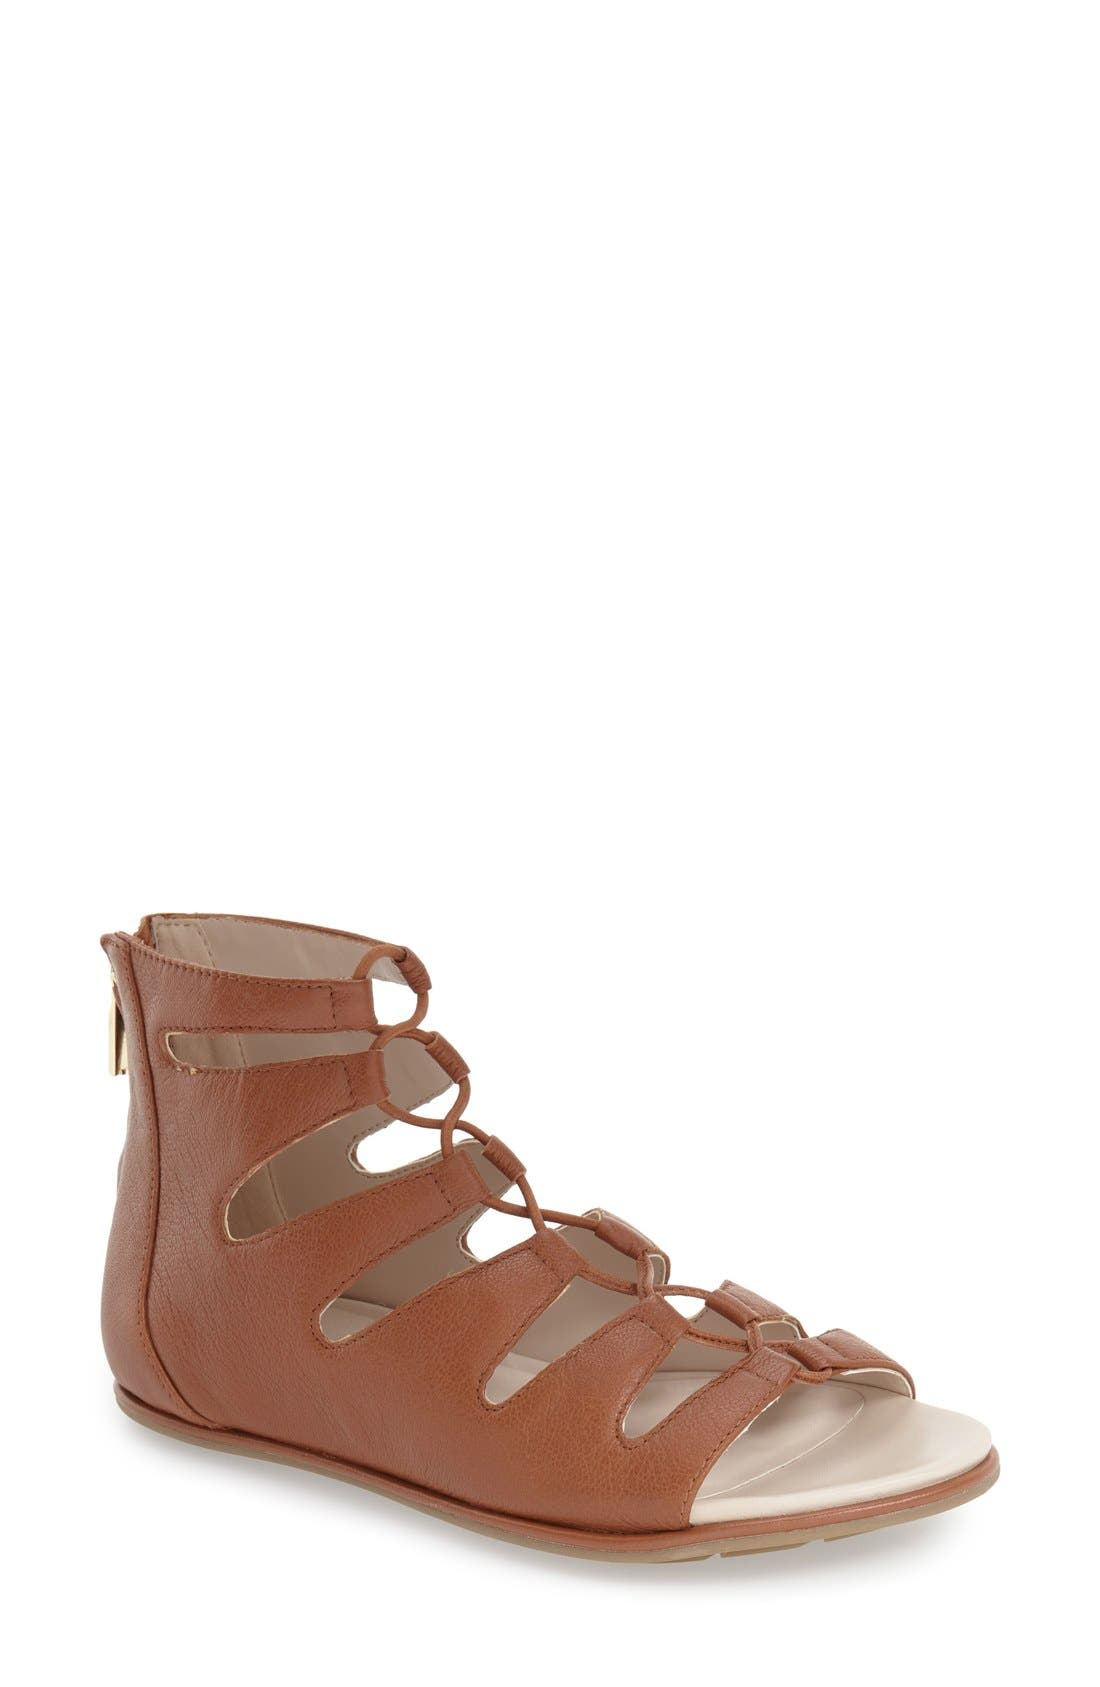 Kenneth Cole New York 'Ollie' Cage Sandal (Women)